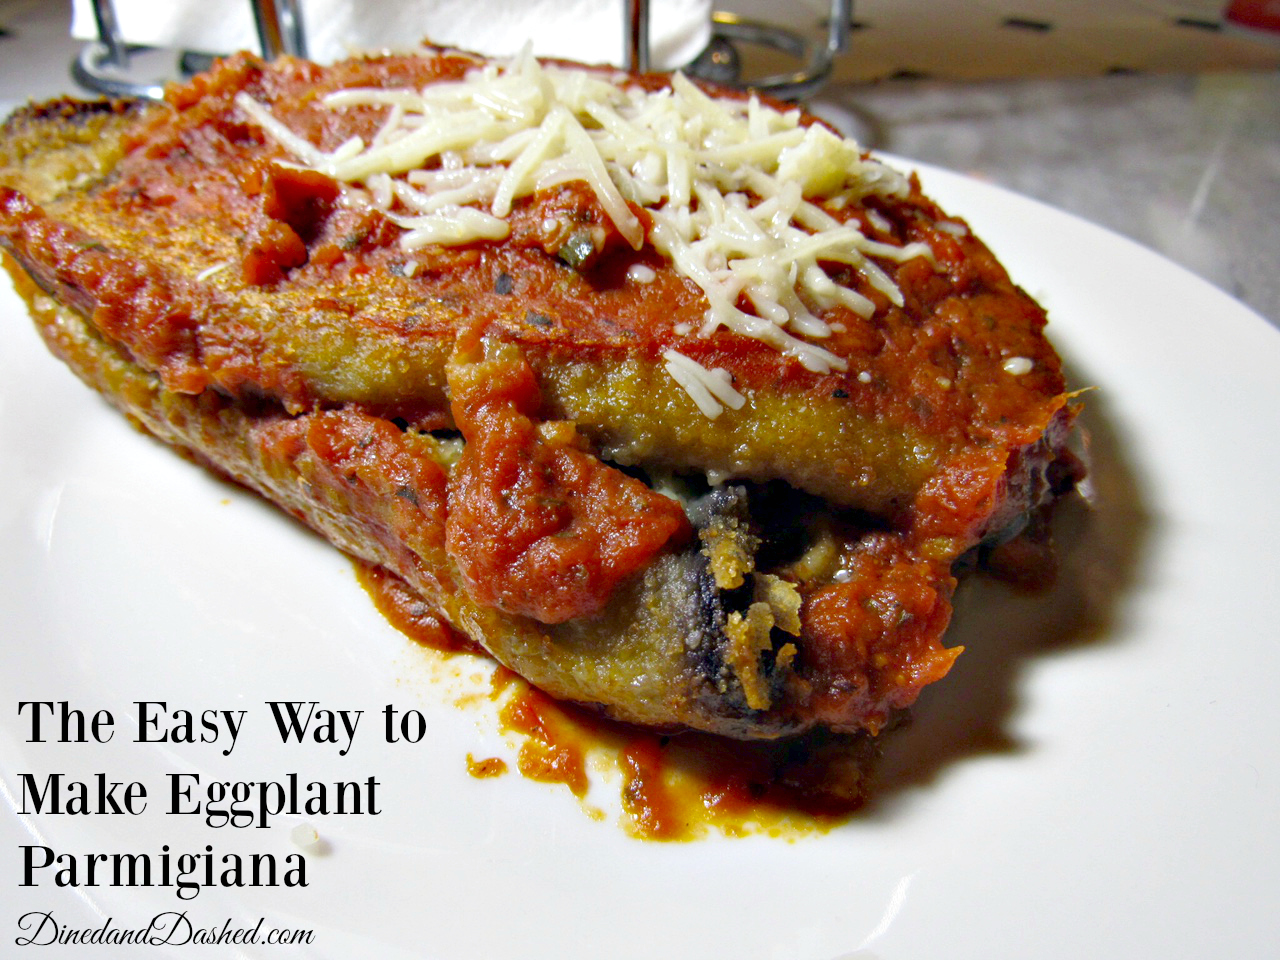 The Easy Way to Make Eggplant Parmigiana